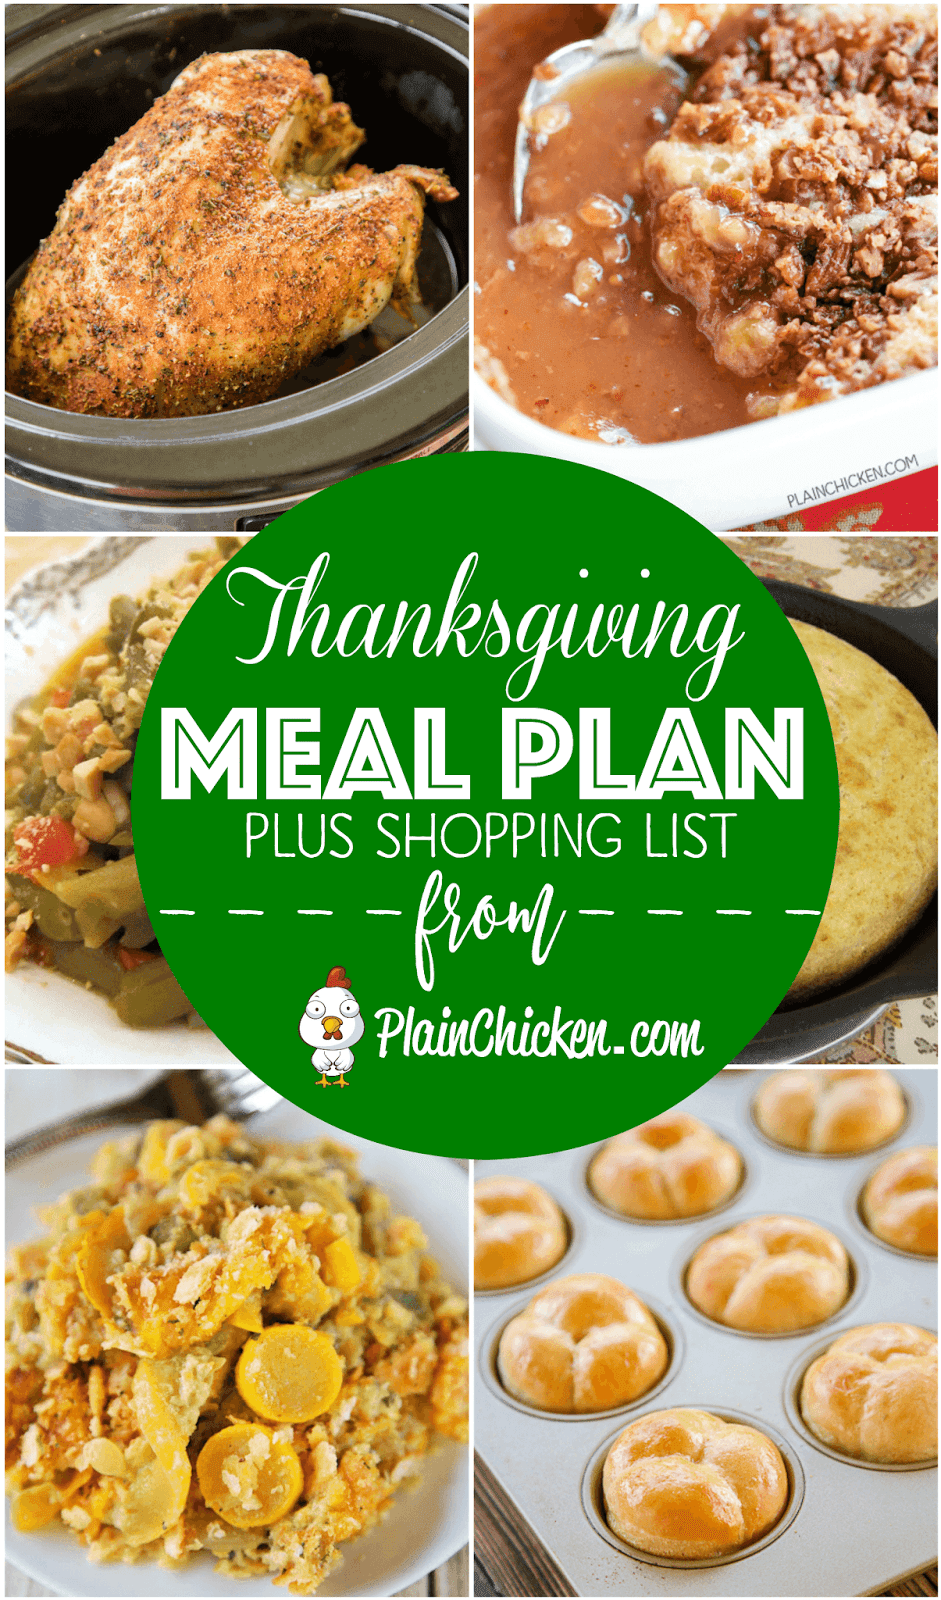 Thanksgiving Meal Plan and Shopping List - get recipes, meal plan and a shopping list to make your holiday meal STRESS-FREE! Turkey, dressing, sides, bread, dessert. When to make what so your holiday is STRESS-FREE!! #thanksgiving #thanksgivingrecipes #mealplanning